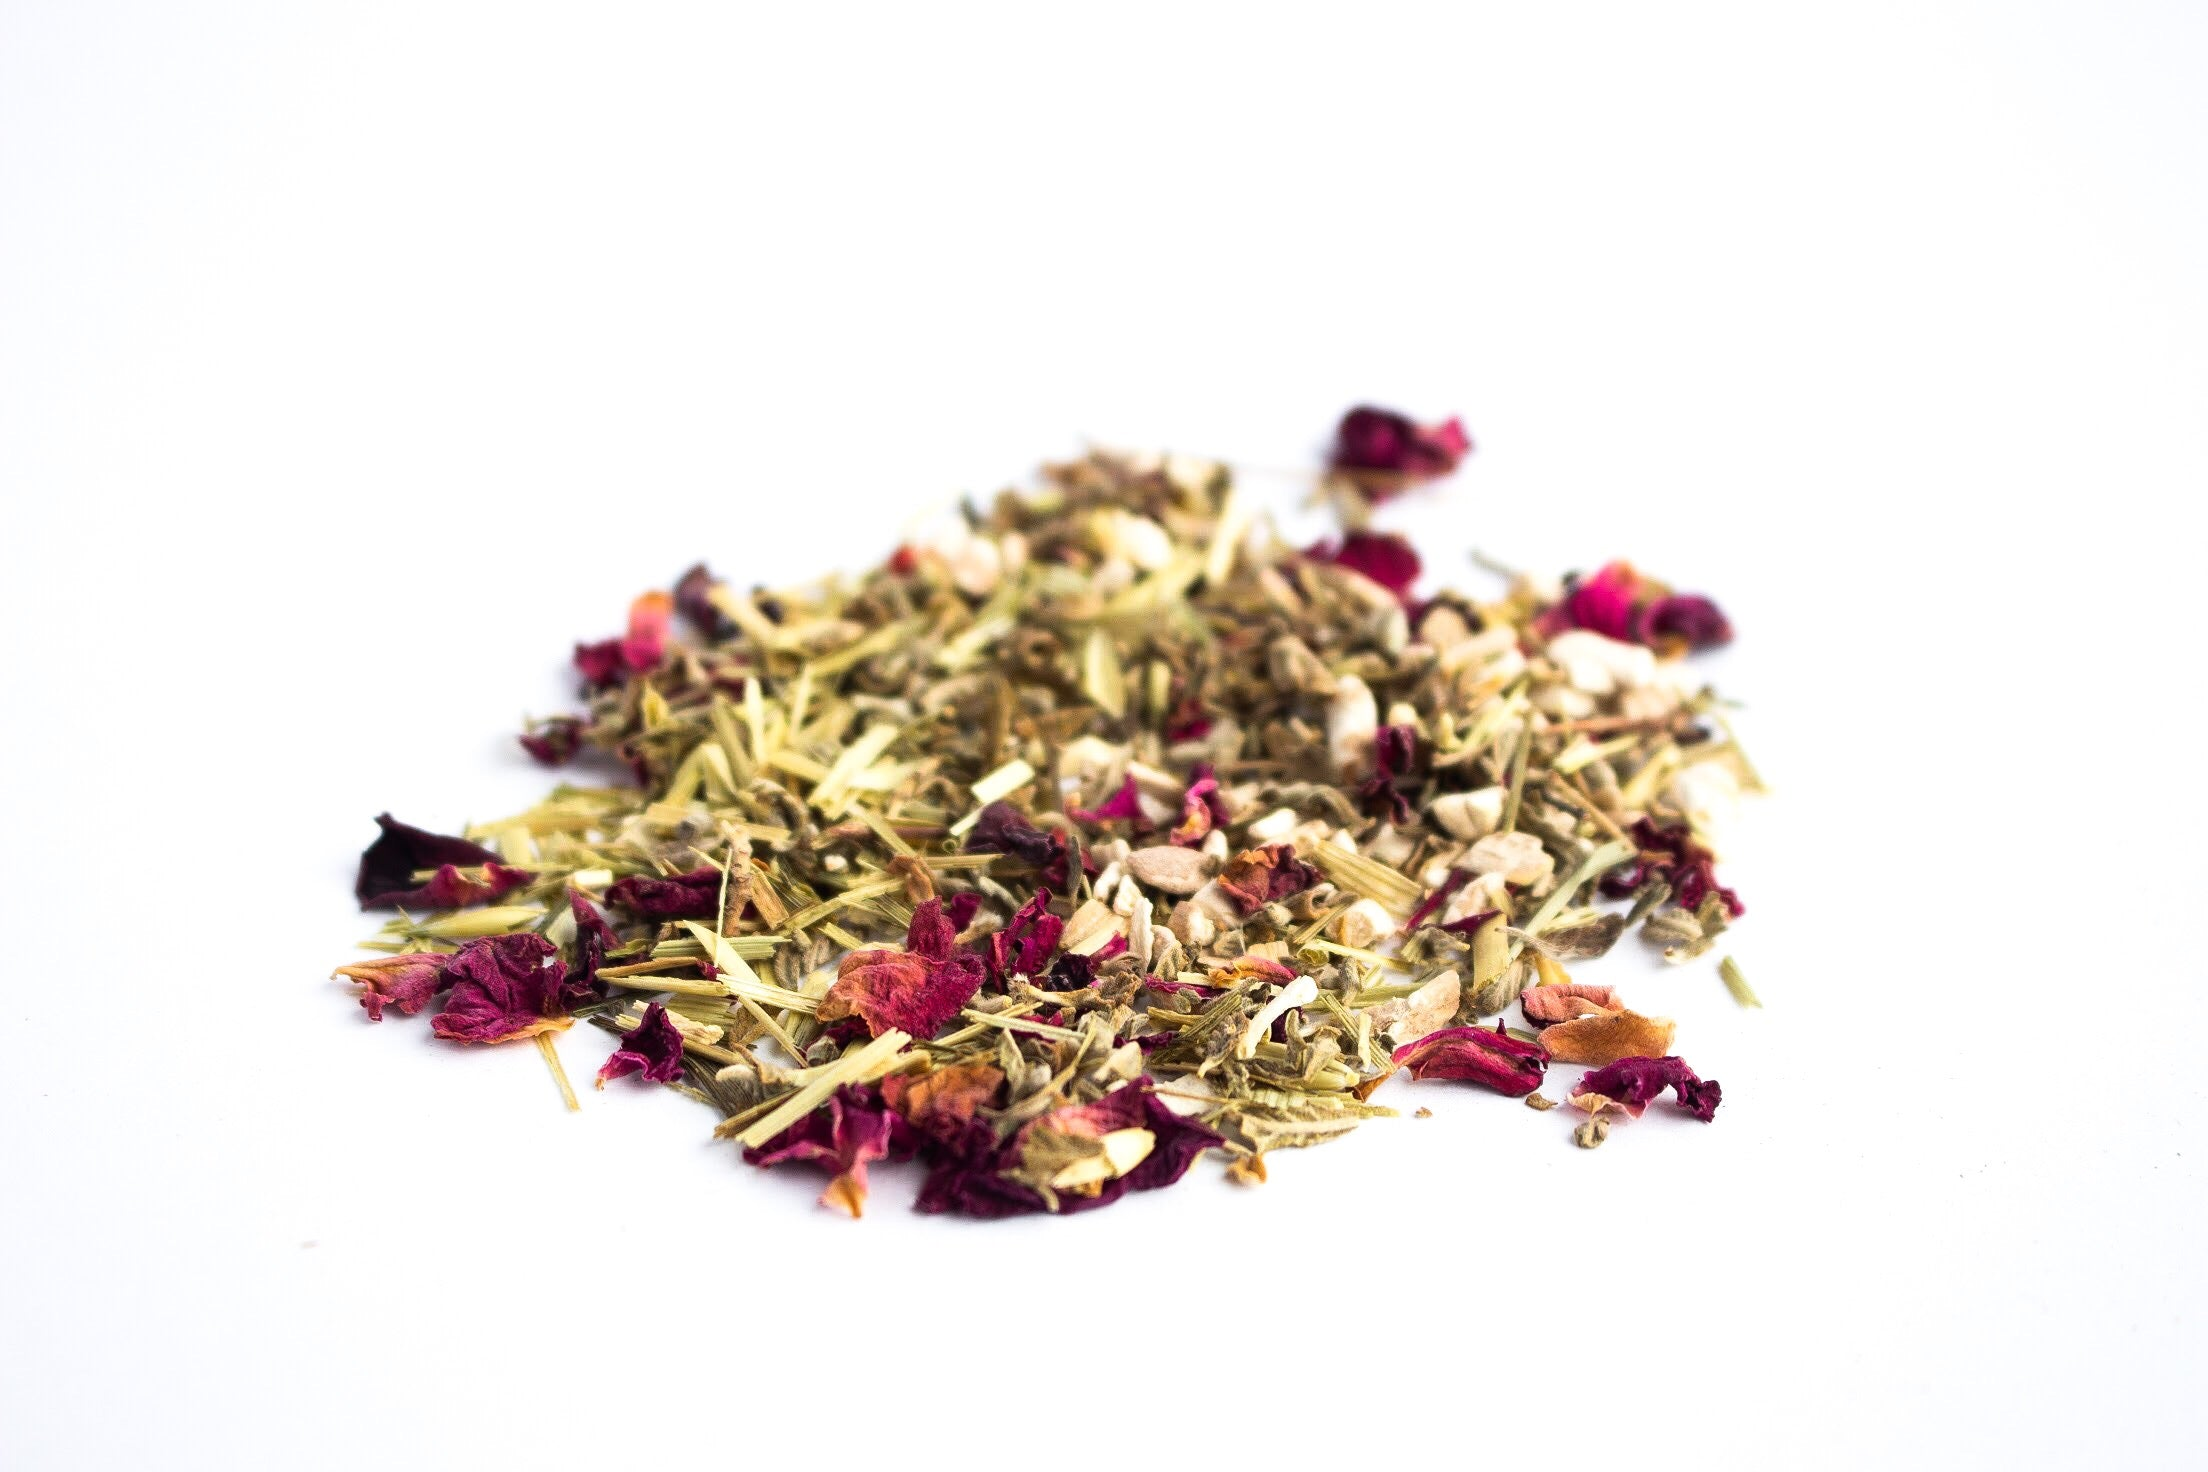 Picture of Ivy's Tea Co.'s So Anxious tea